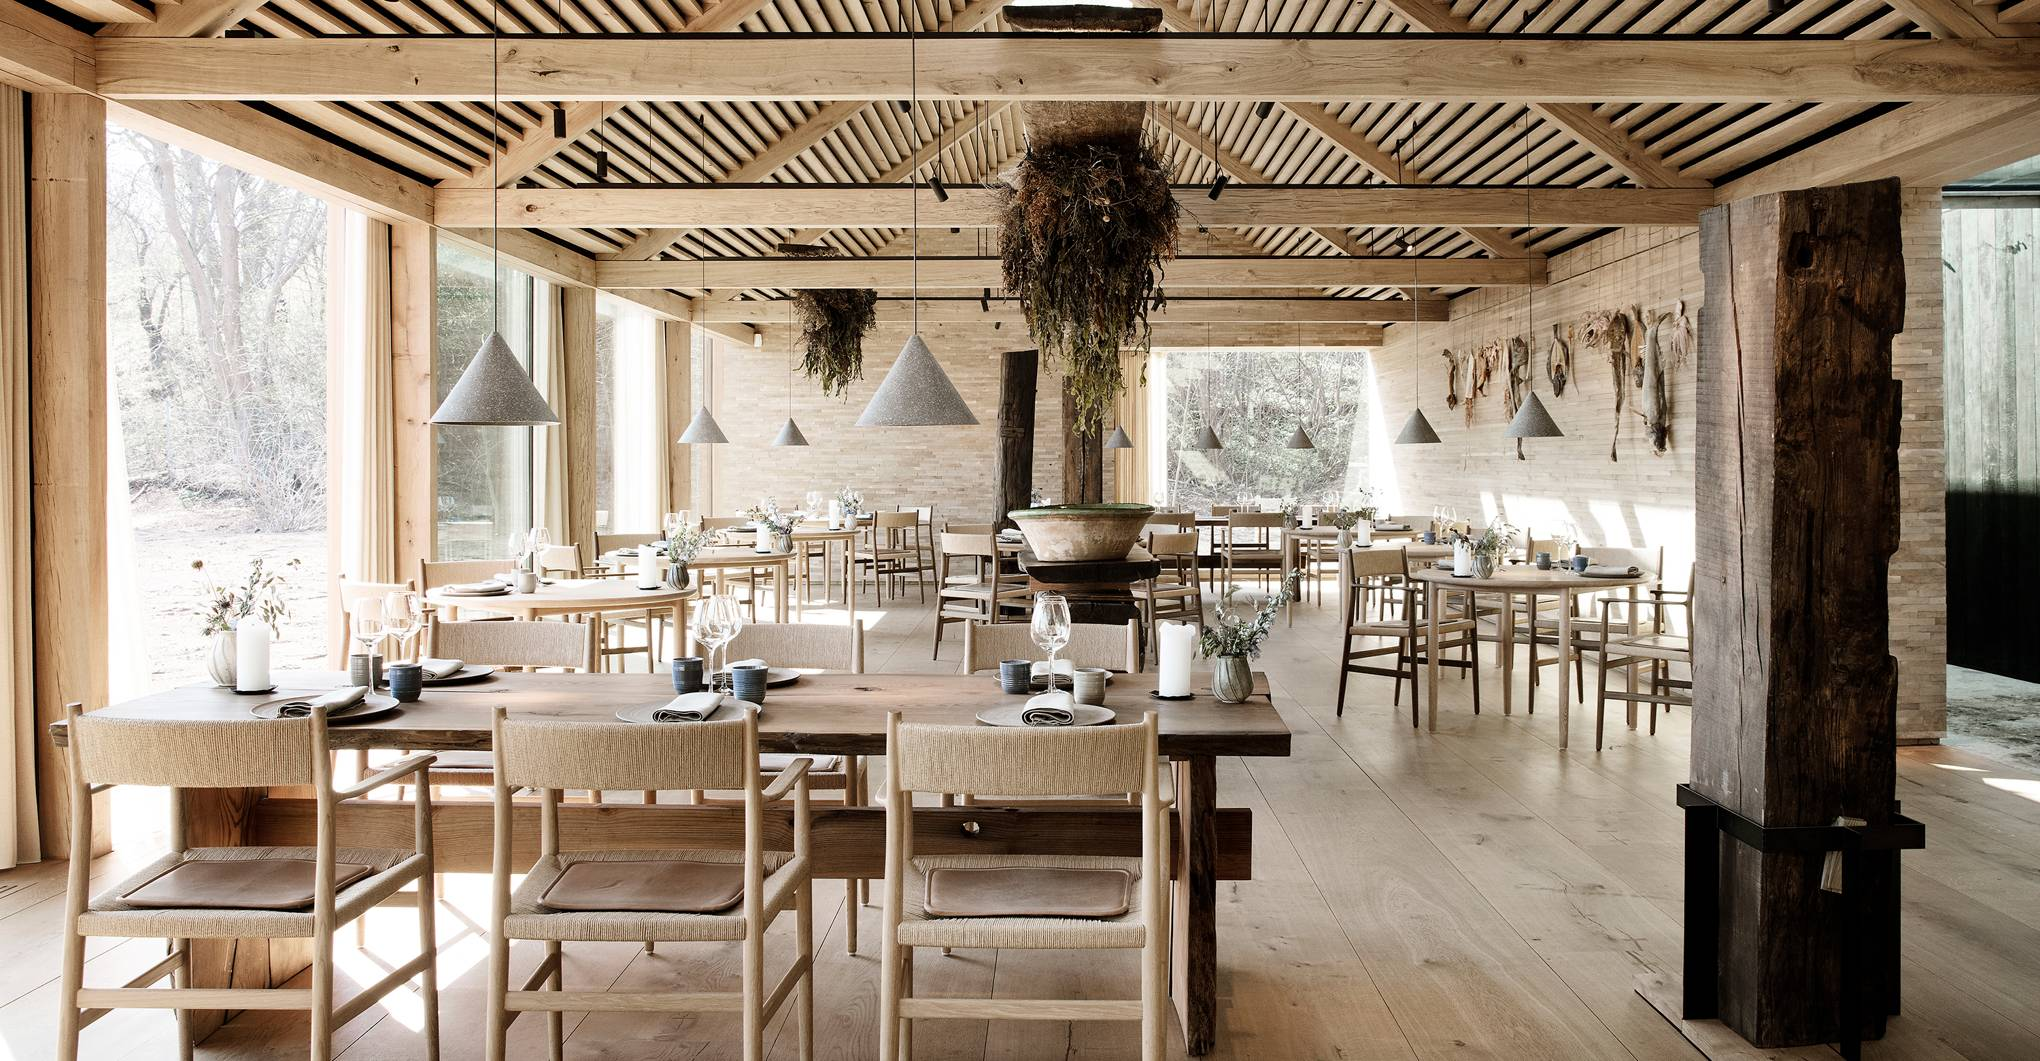 An exclusive look inside Noma 2.0